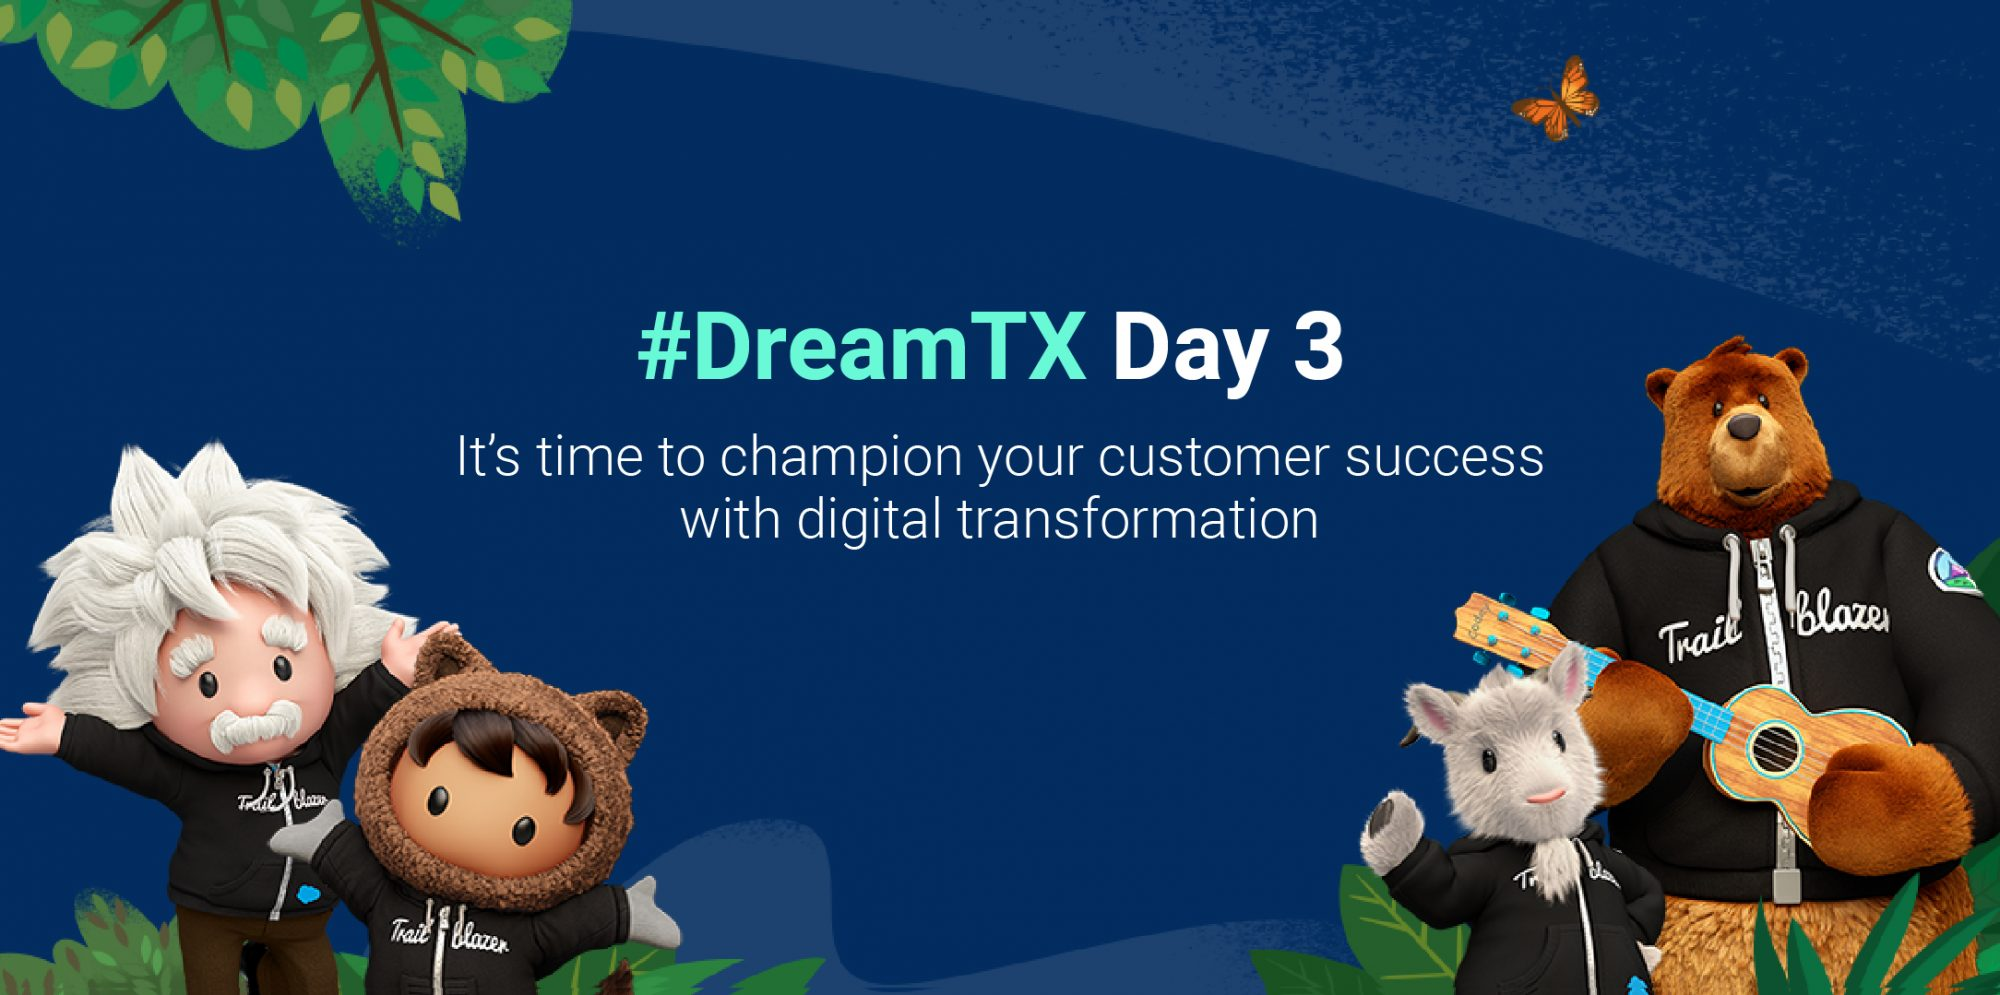 DreamTX Day 3: Reimagining the customer experience